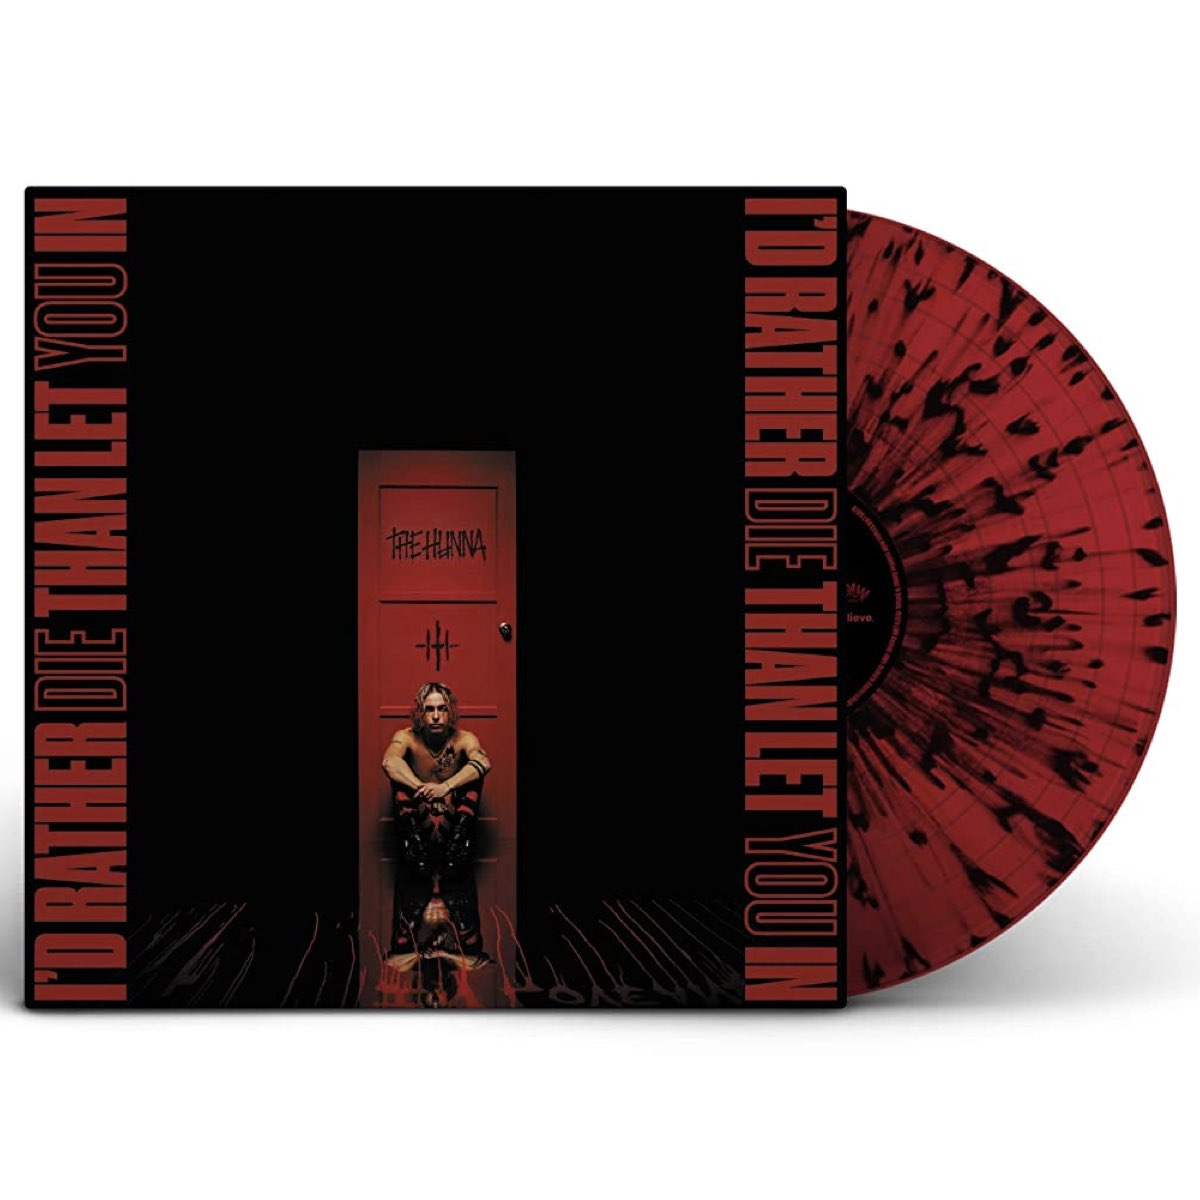 The Hunna - I'd Rather Die Than Let You In [Limited Edition - Blood Red Vinyl with Black Splatter]